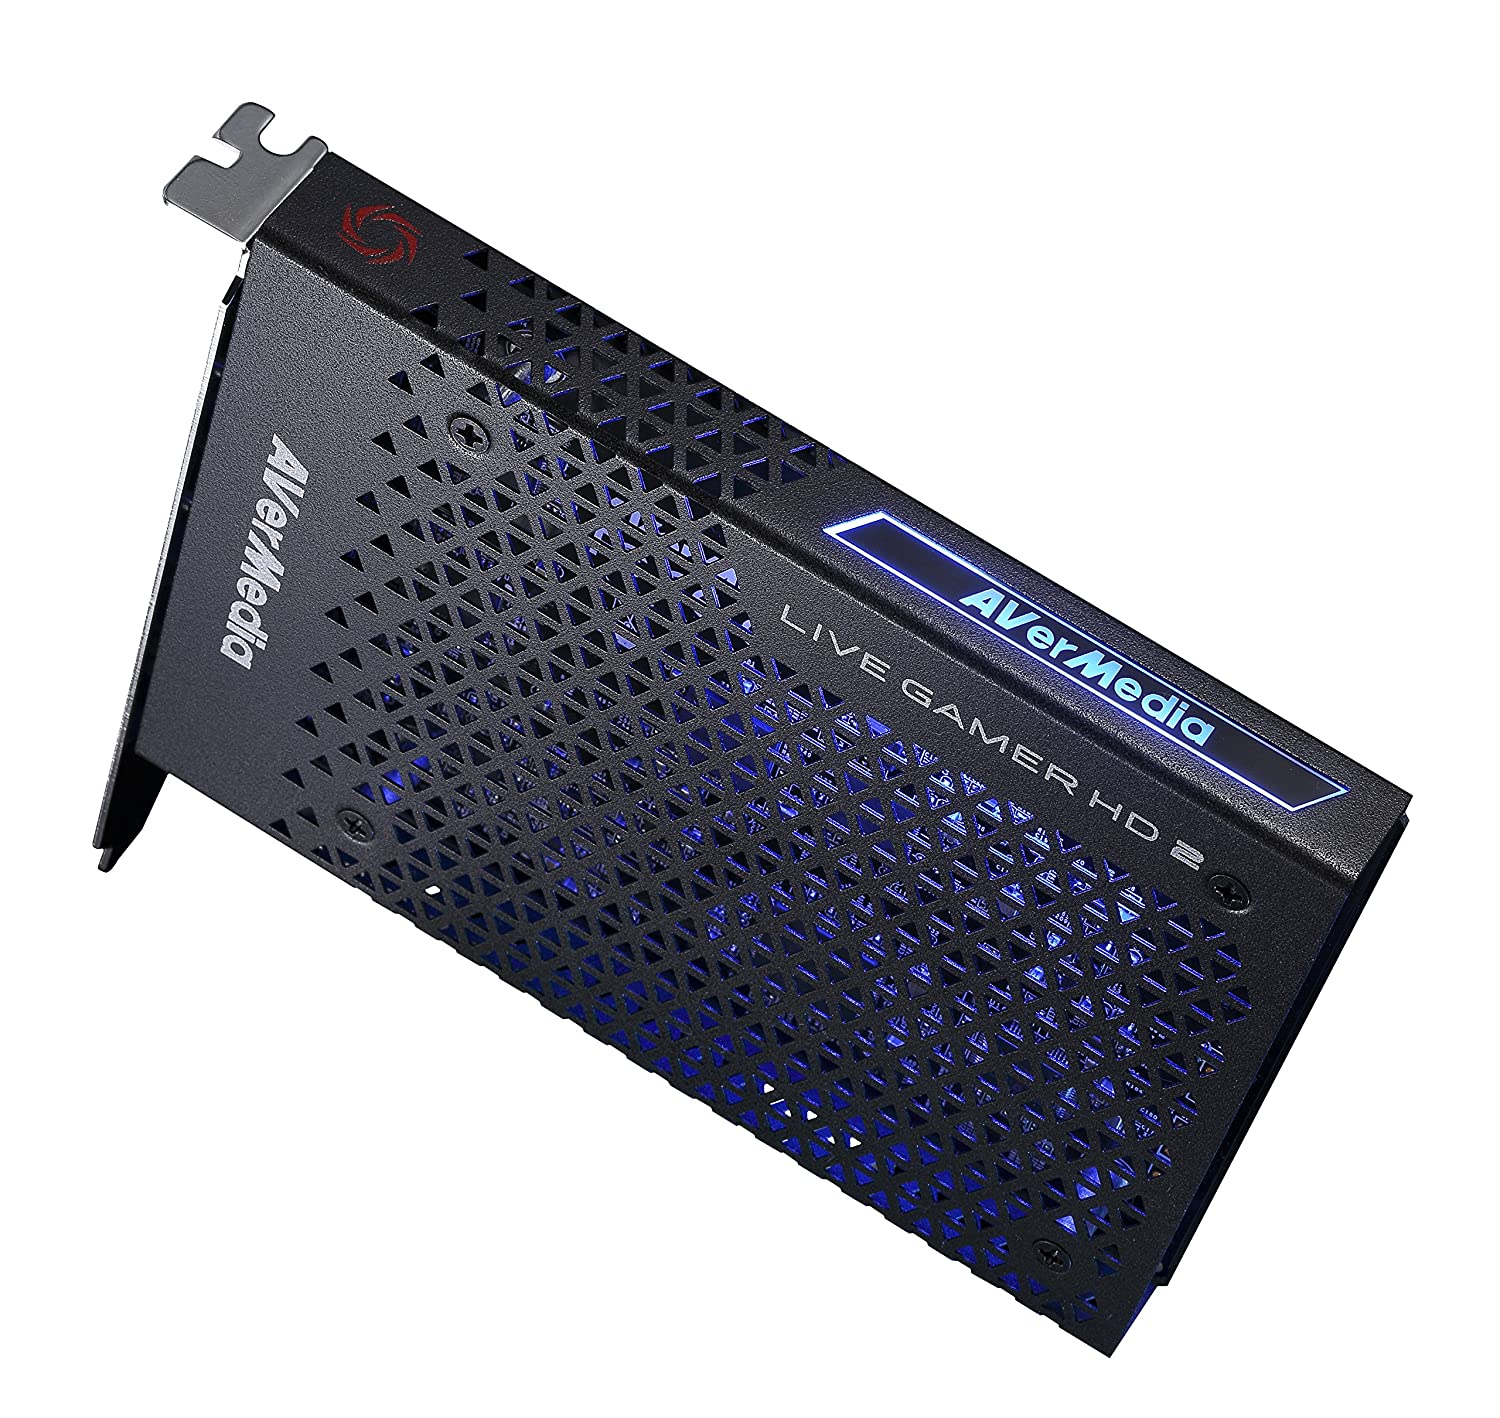 Live Gamer Portable 2 Capture Card - YouTube /& Twitch AVerMedia Plug and play GC510 LGP 2 Switch gameplay in 1080p60